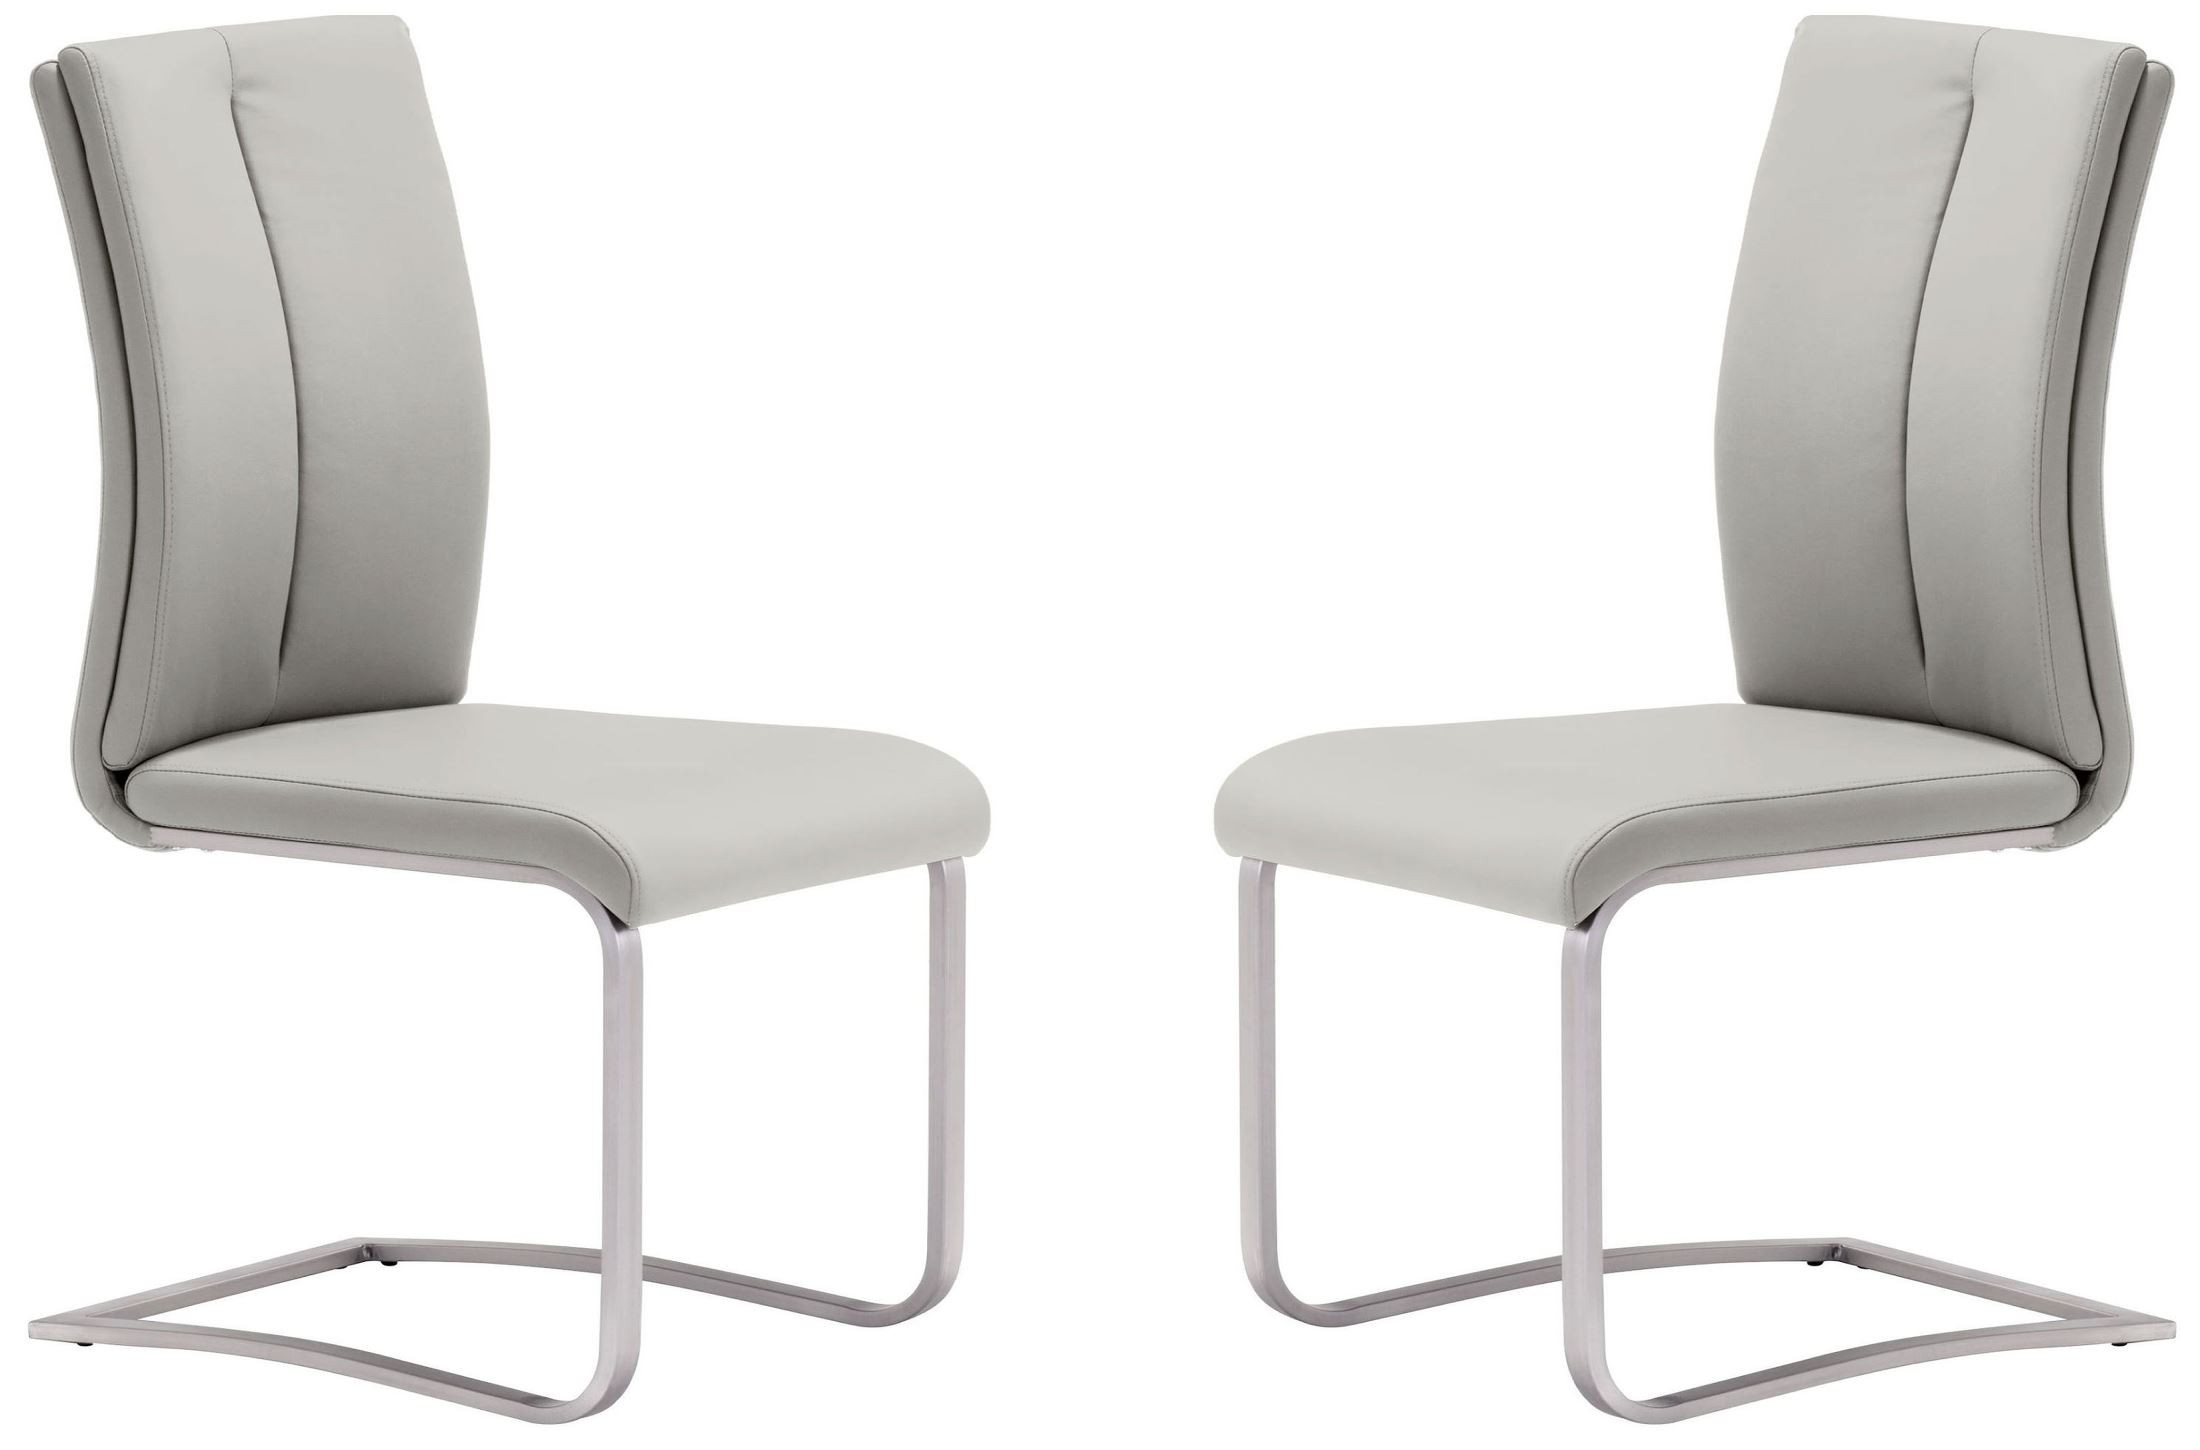 Taupe Dining Chairs Rosemont Taupe Dining Chair Set Of 2 From Zuo Mod 100139